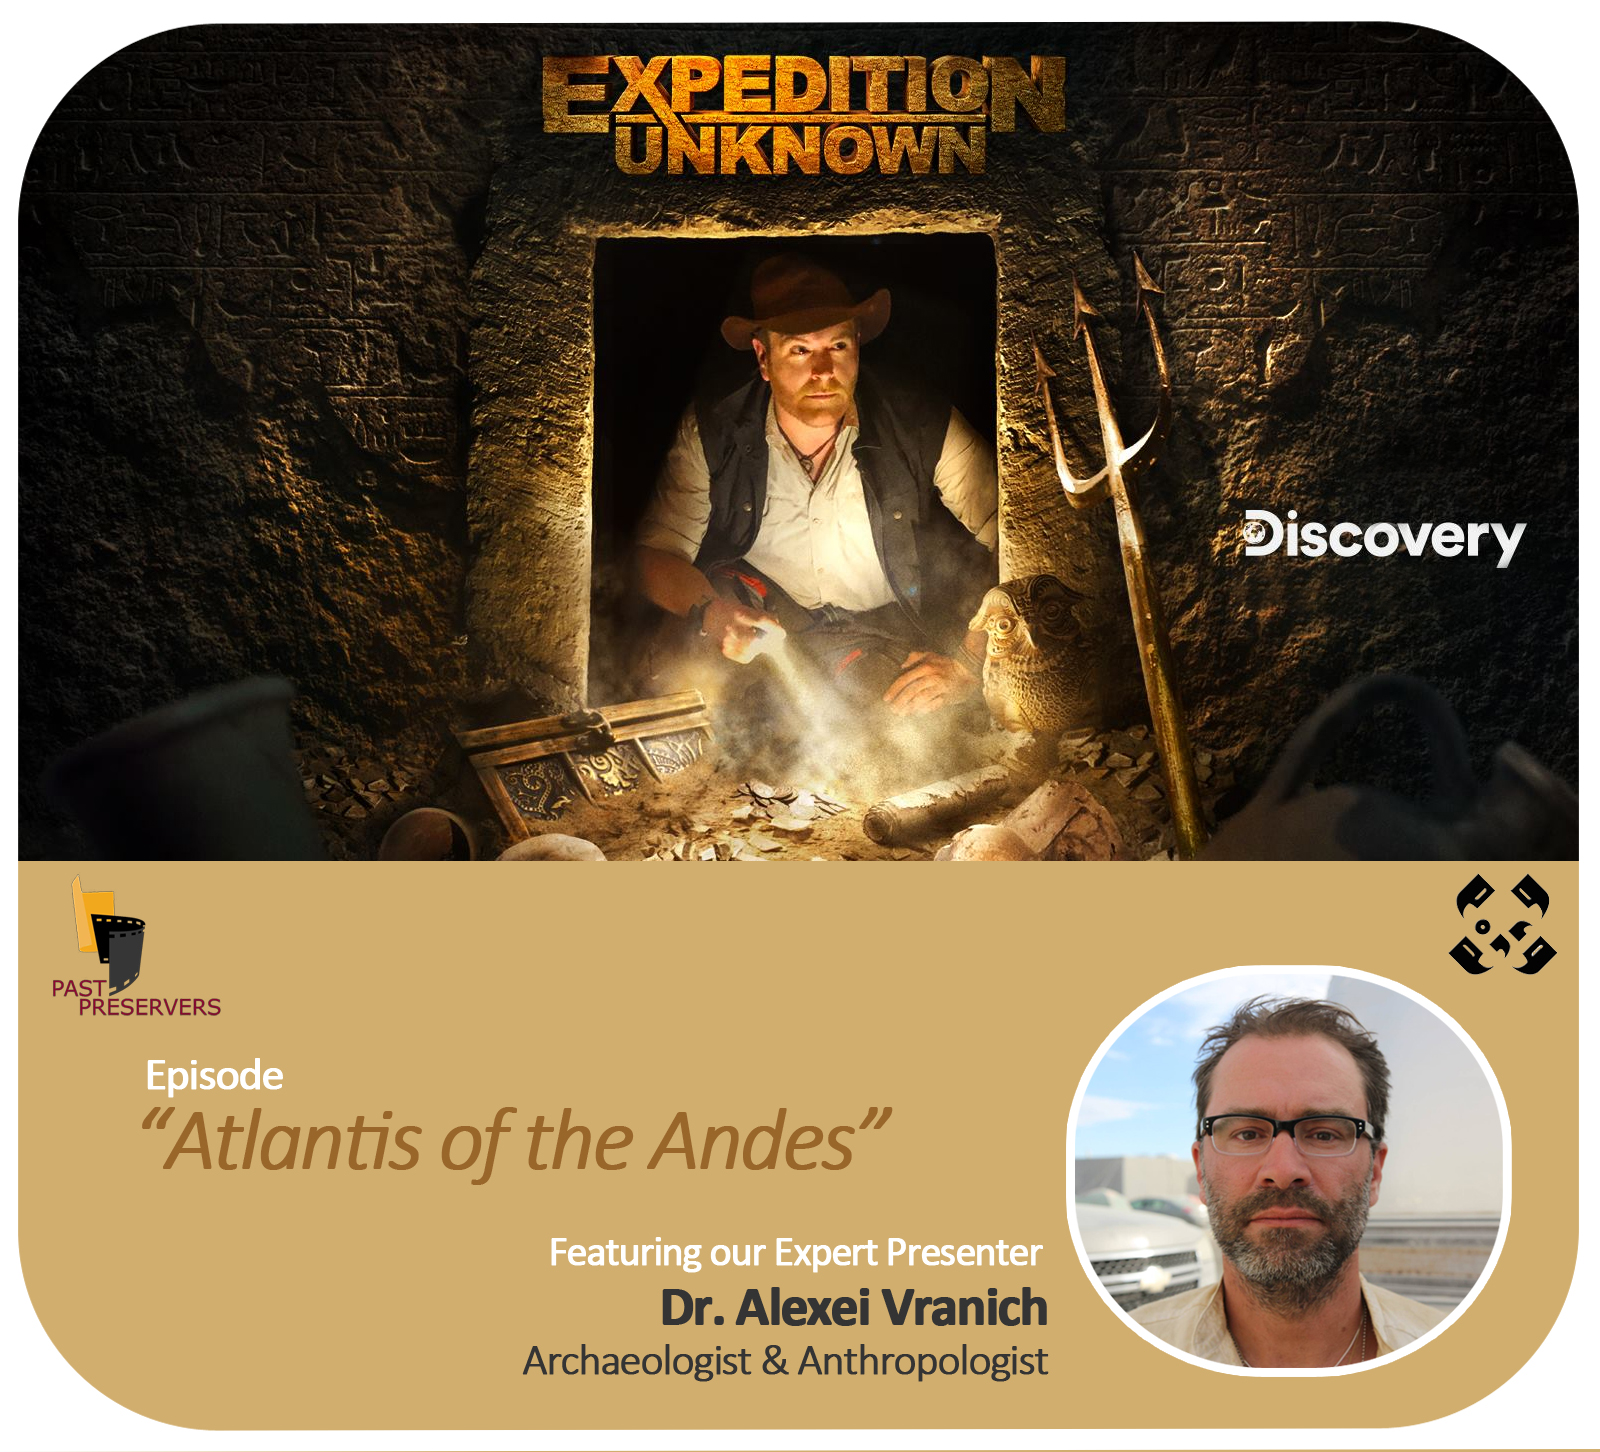 Dr. Alexei Vranich on Discovery's Expedition Unknown!